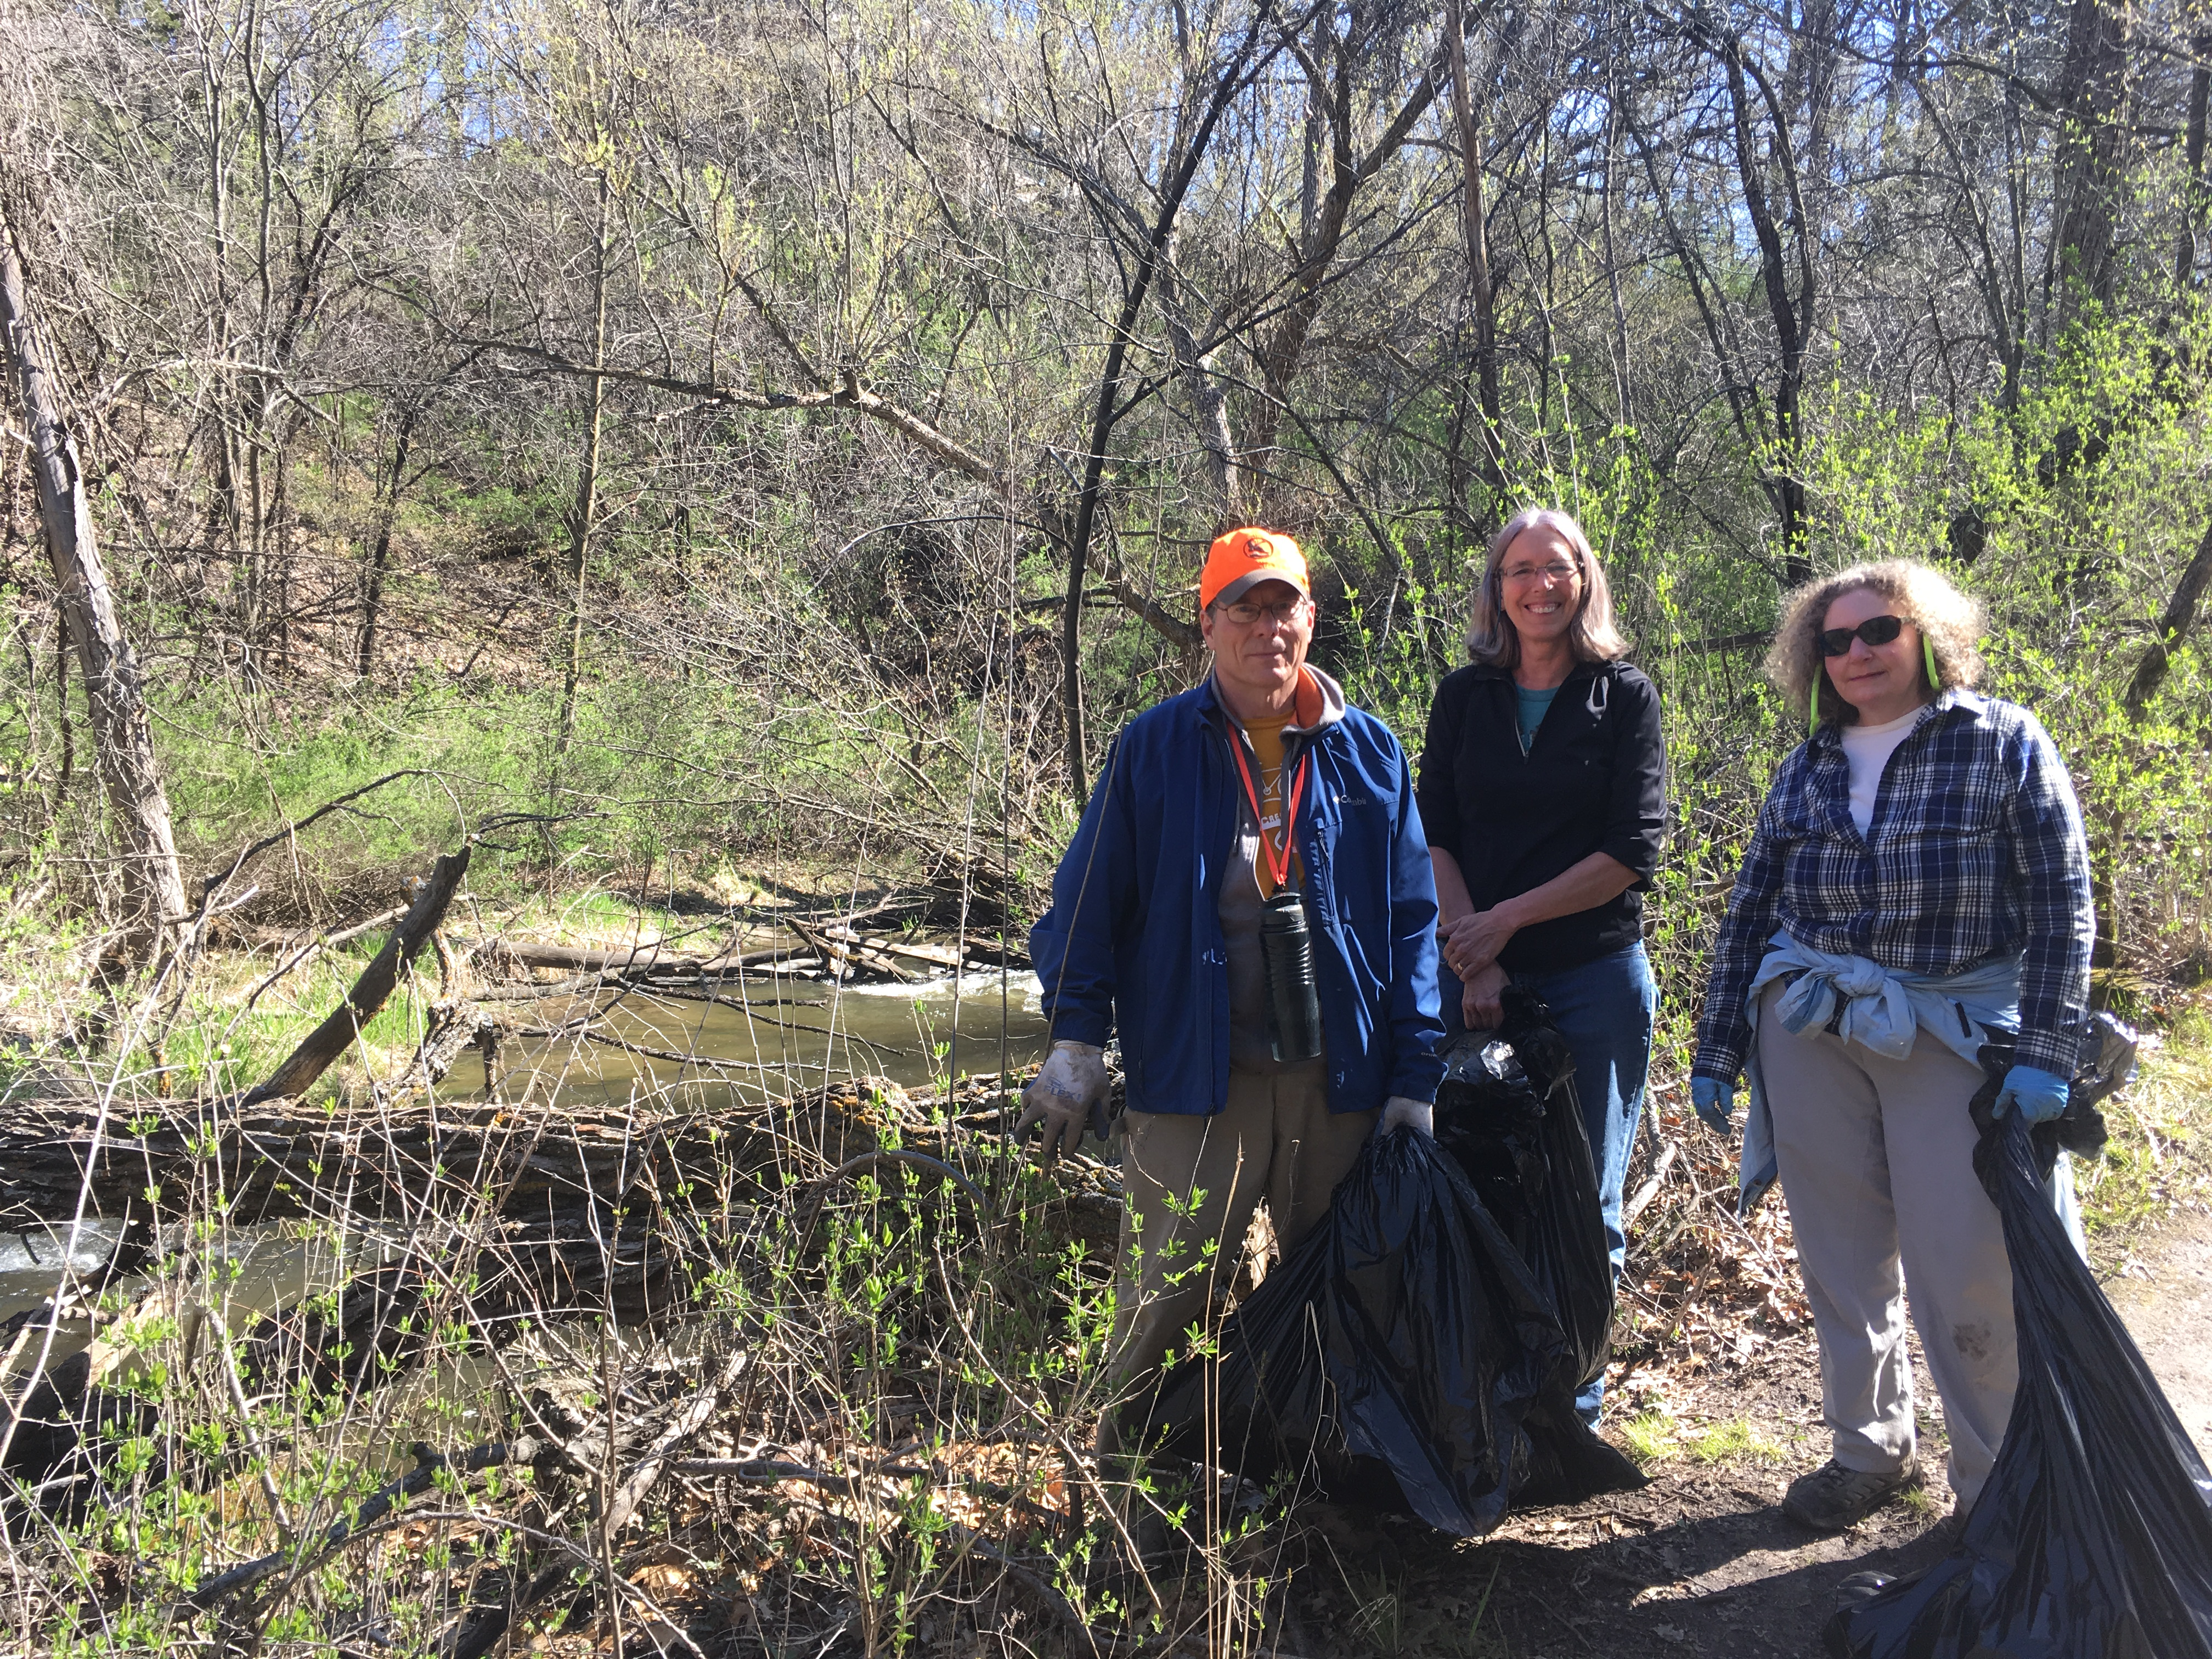 Purgatory Creek_2017Apr27_Eden Prairie Parks Clean Up Day Volunteer Group.JPG